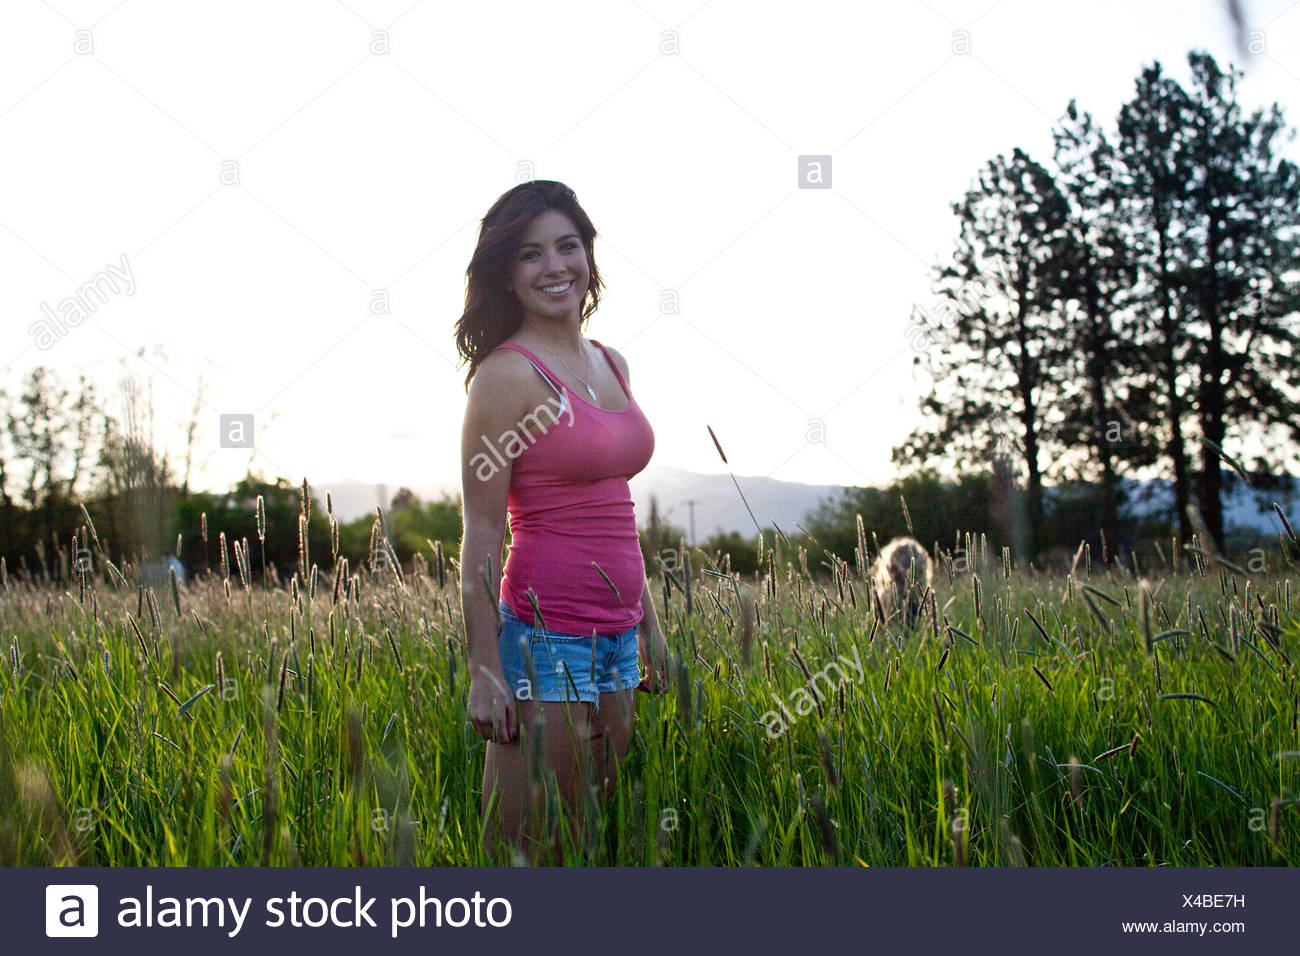 A girl stands in tall grass on a sunny day in Idaho. - Stock Image